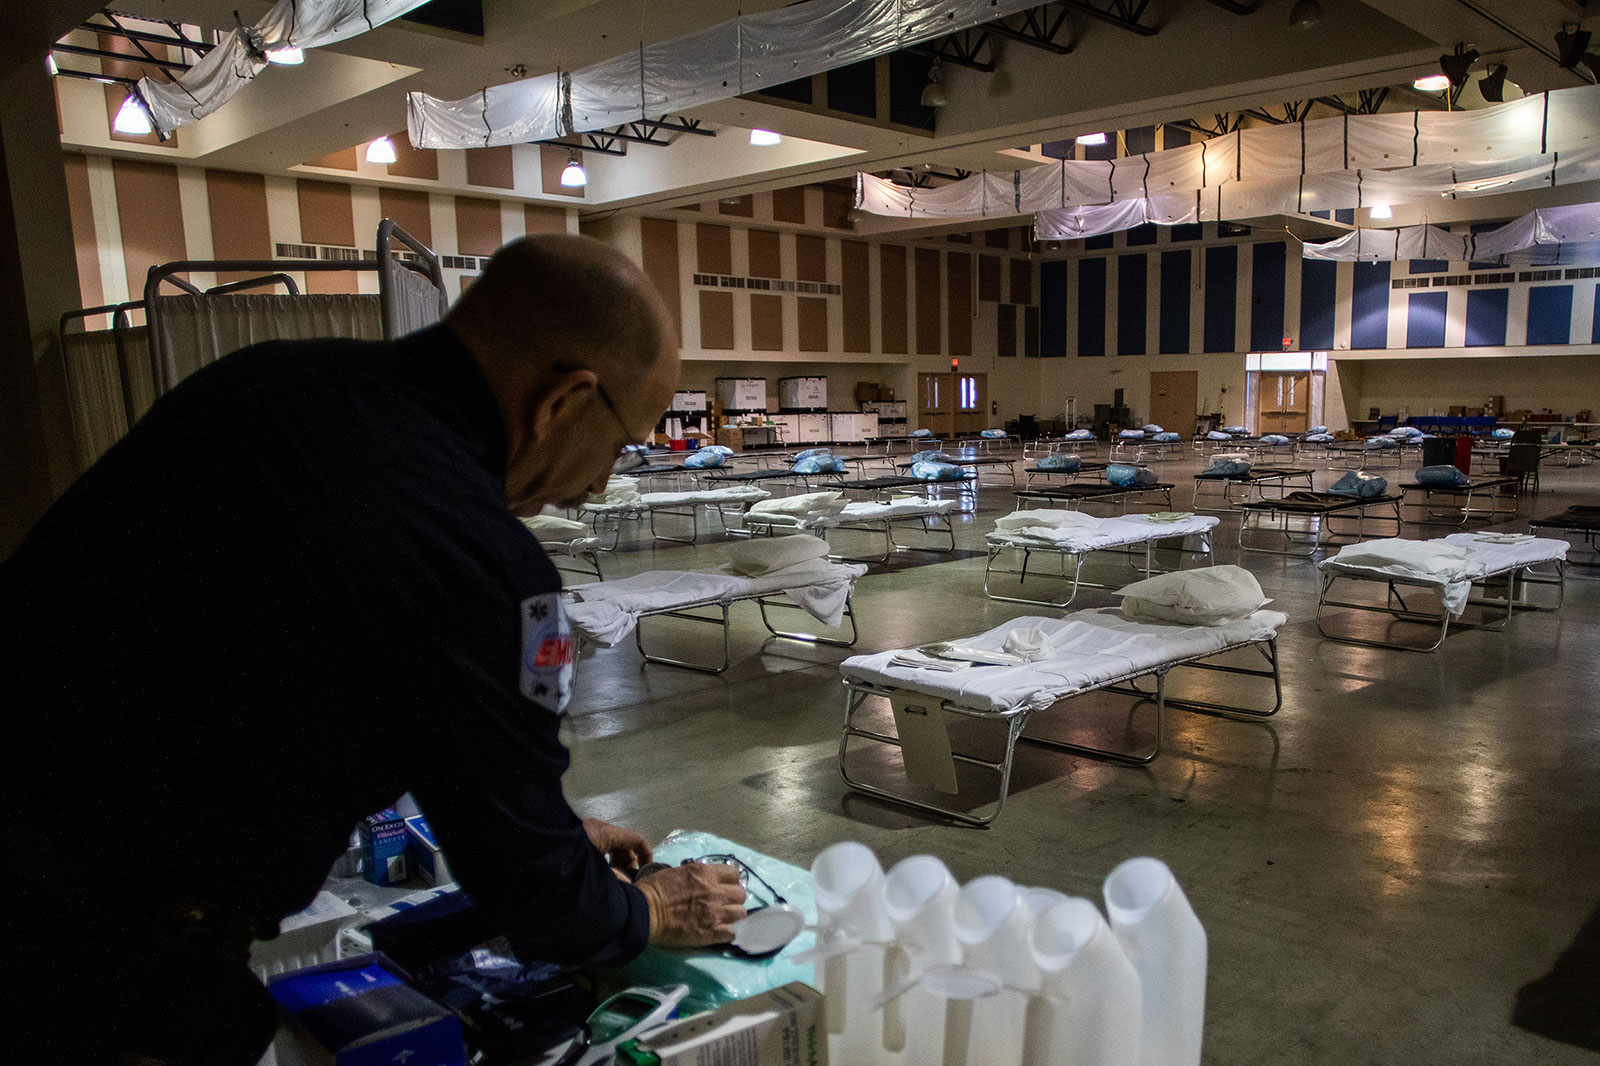 Health Public Information Officer Shane Reichardt organizes medical equipment inside a field hospital in Indio, California, on March 29.